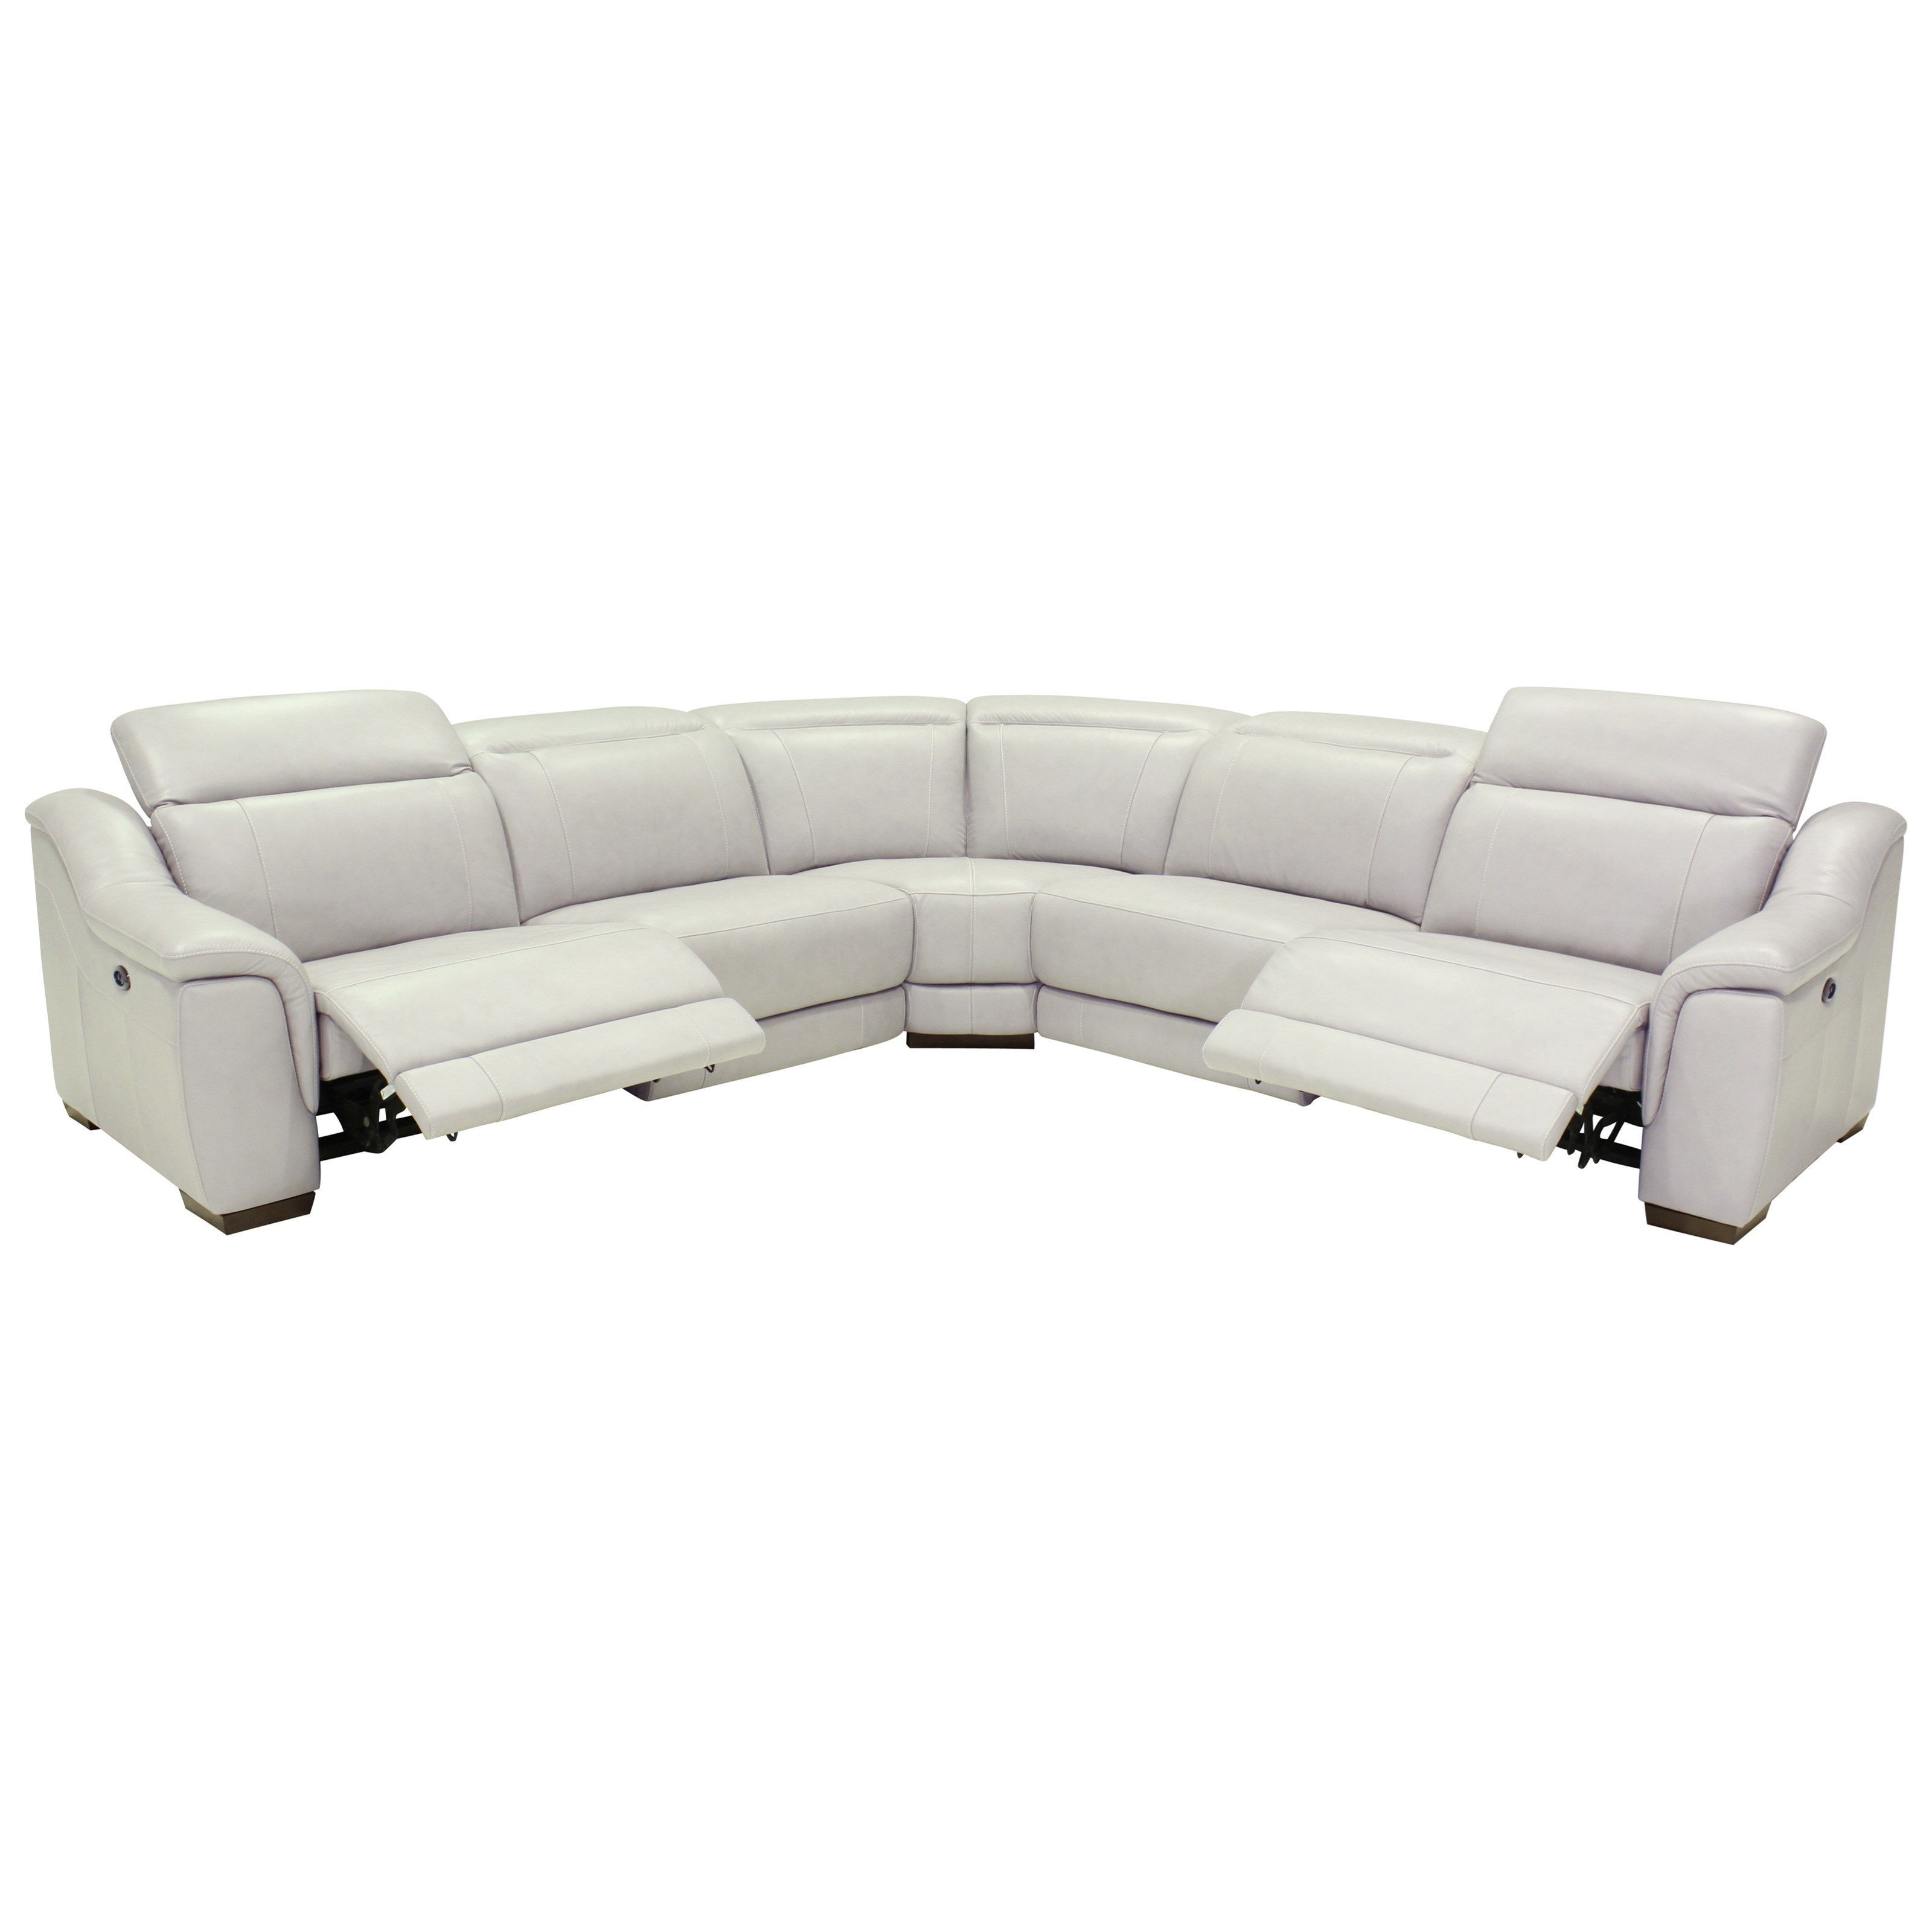 htl 9557 contemporary power reclining 5 seat sectional hudson s rh hudsonsfurniture com Reliner HTL Leather Sofa htl recliner sofa singapore